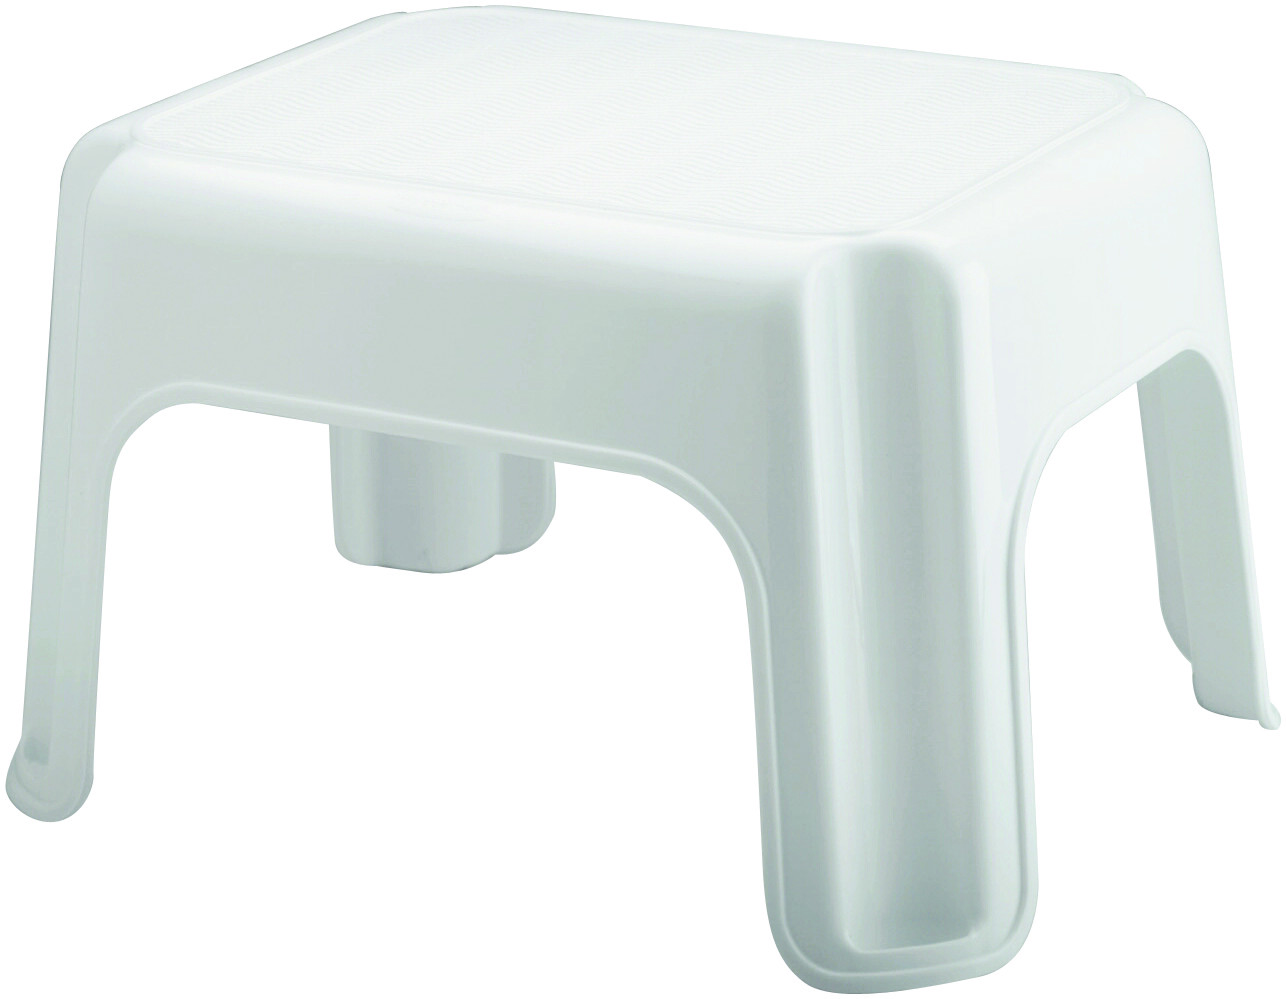 Enjoyable Rubbermaid Home Fg420087Wht Roughneck Stool Step White Utility 300 Pound Pdpeps Interior Chair Design Pdpepsorg